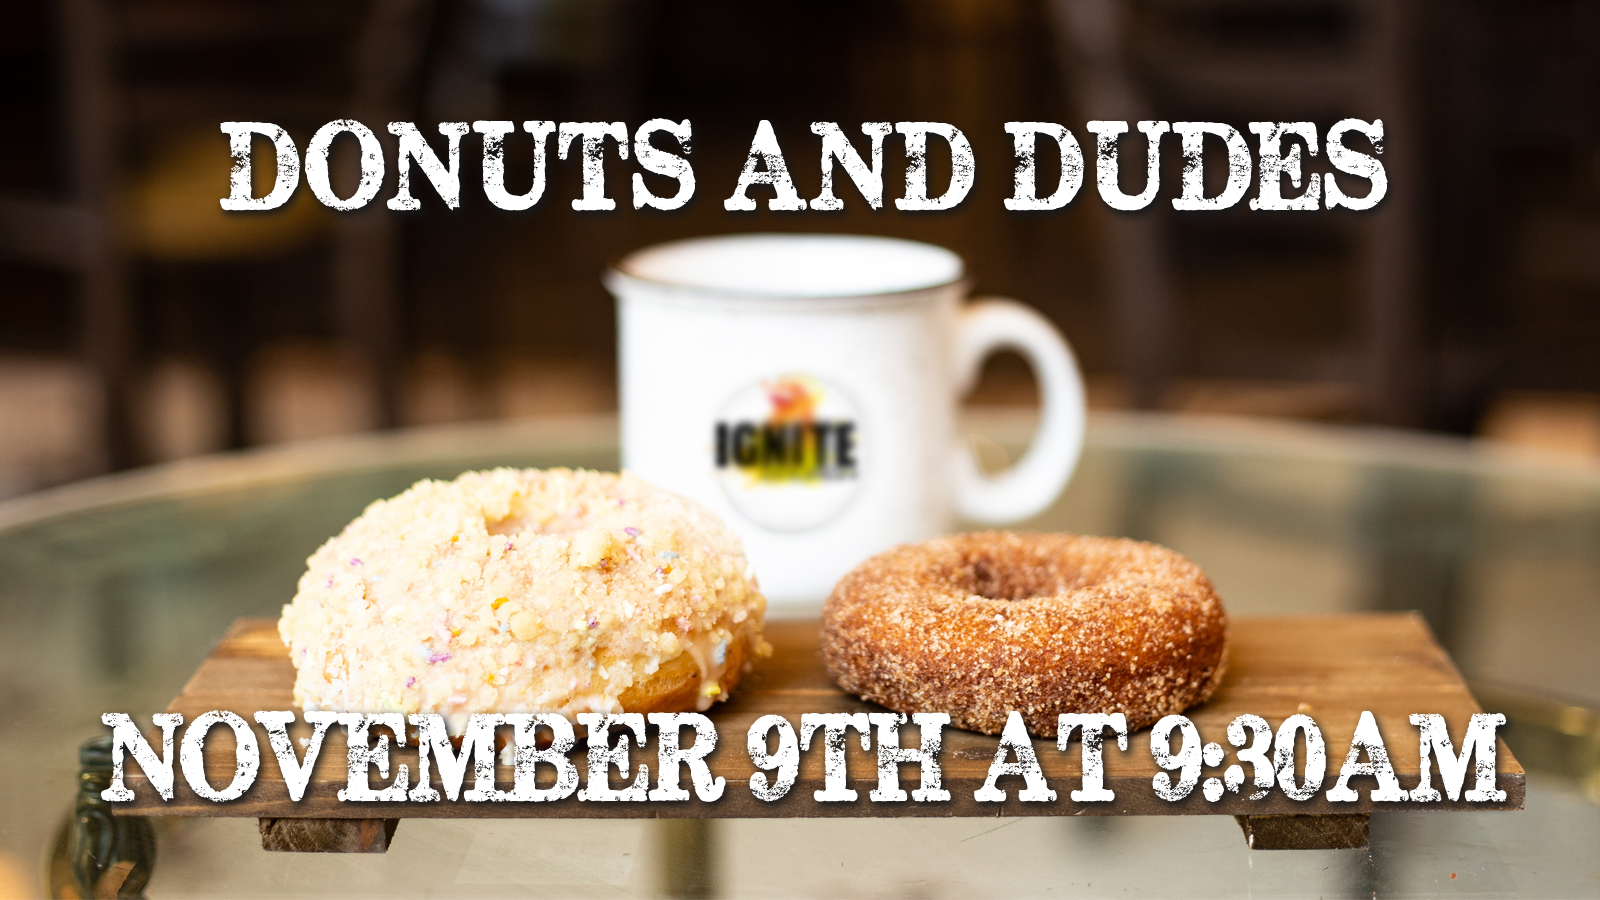 Donuts and Dudes